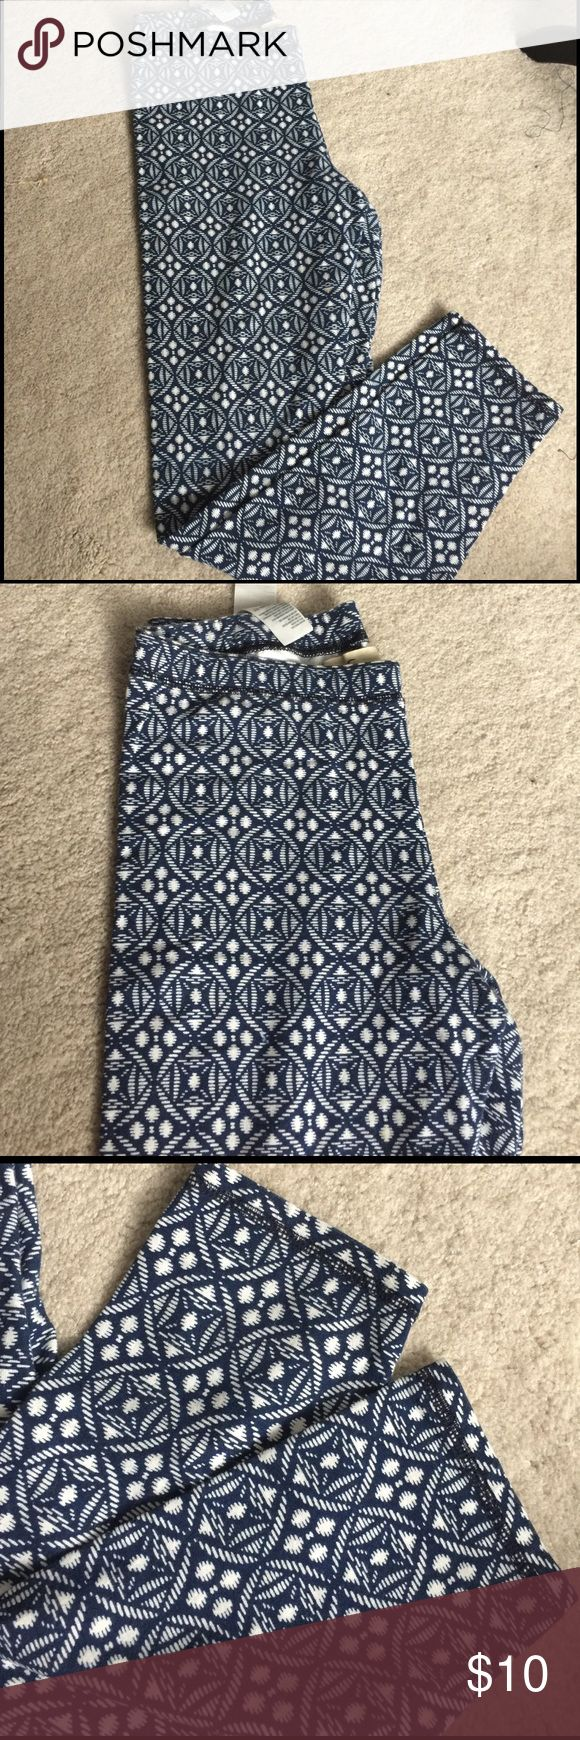 Like New Hollister leggings Beautiful Hollister leggings, would be mistaken for brand new ! Blue and white pattern! Dress them up or down. Hollister Pants Leggings